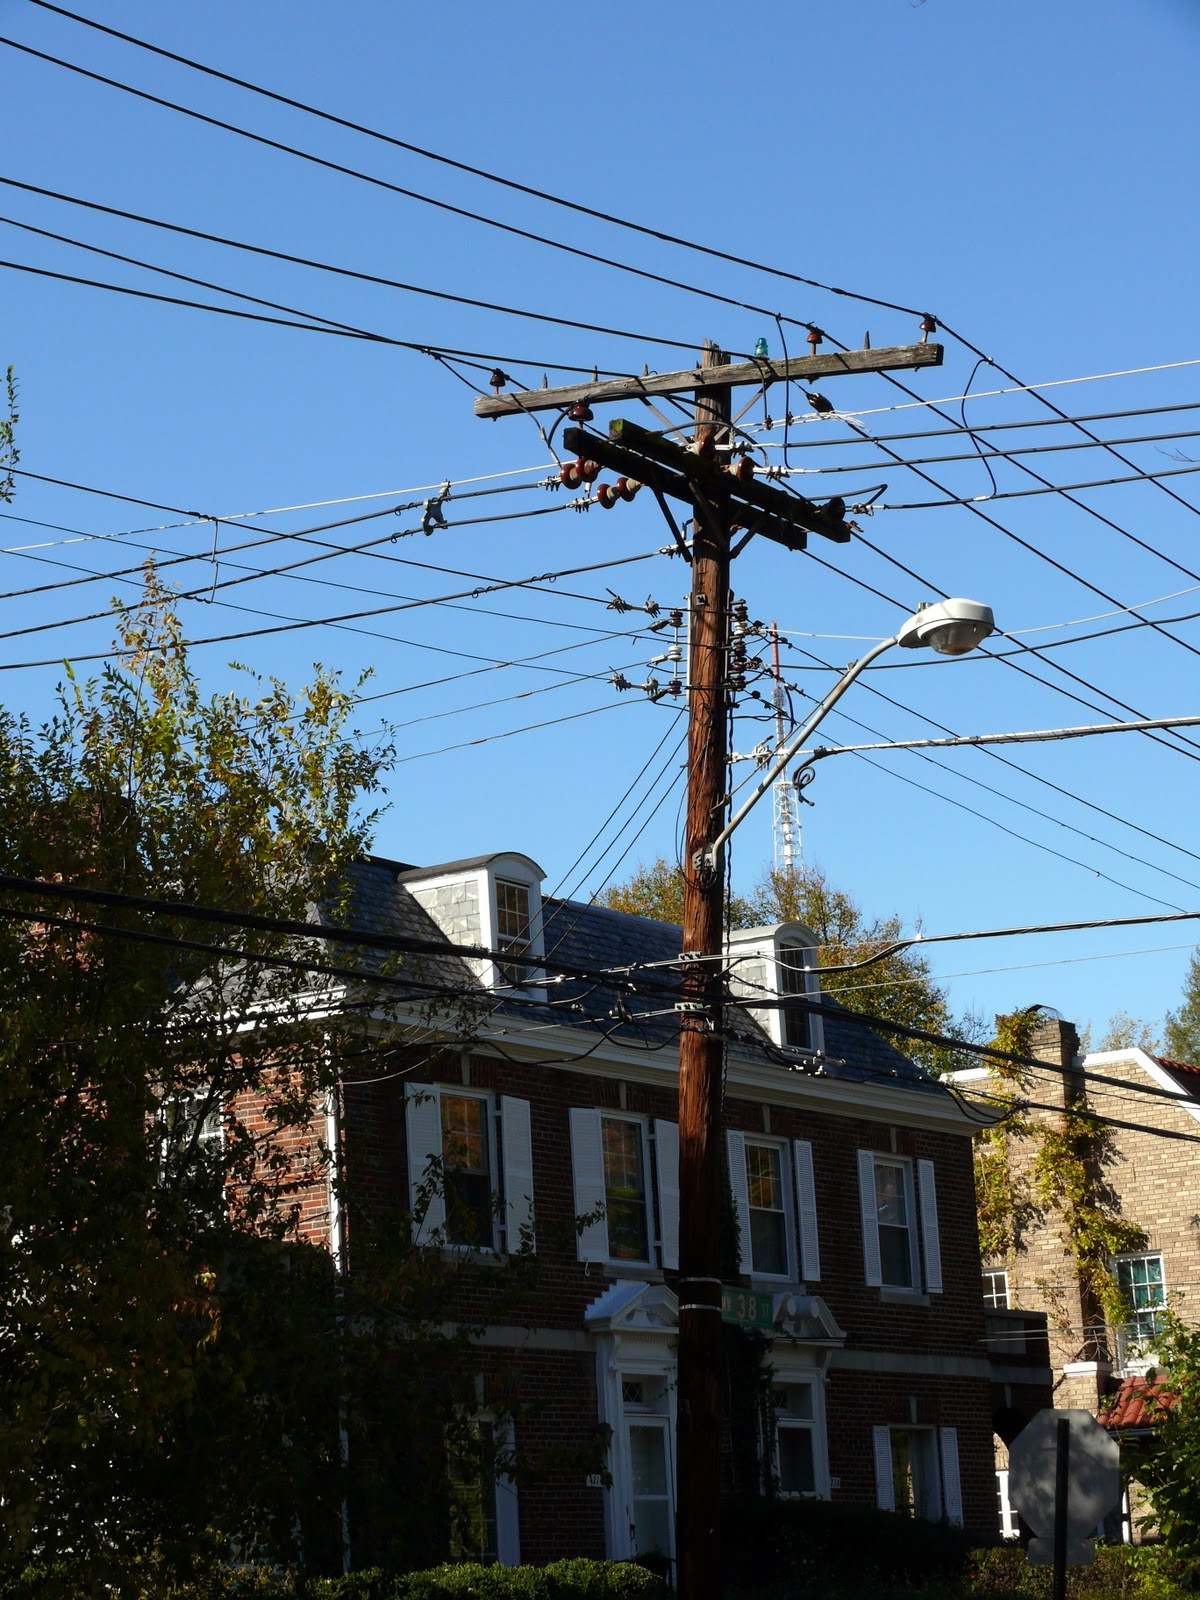 All Life Is Local: Should We Put Power Lines Underground?